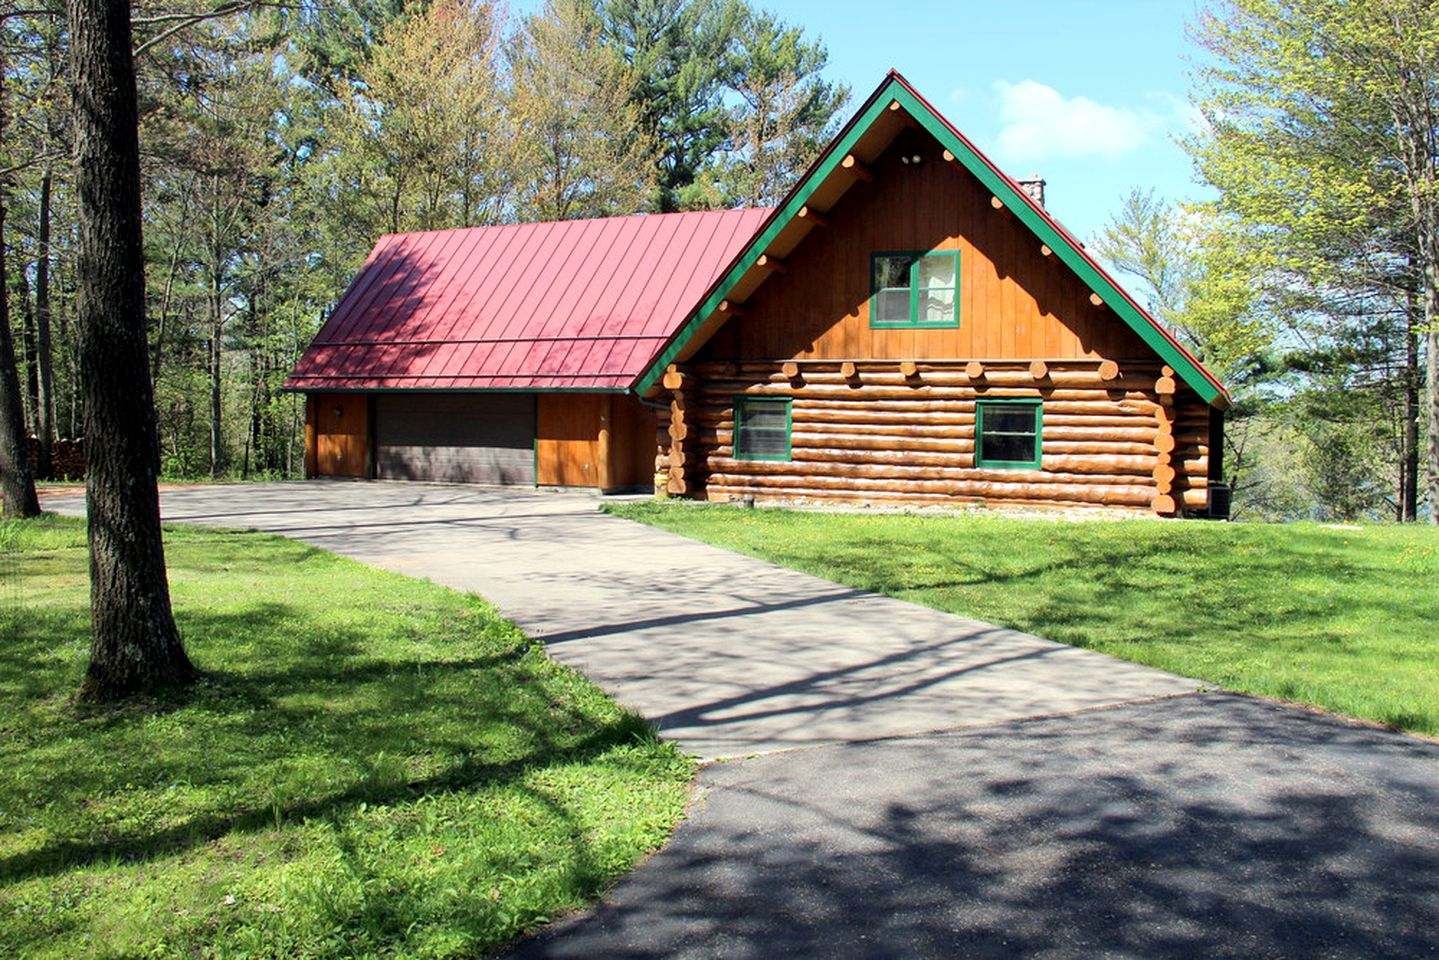 Cabins (Stevens Point, Wisconsin, United States)